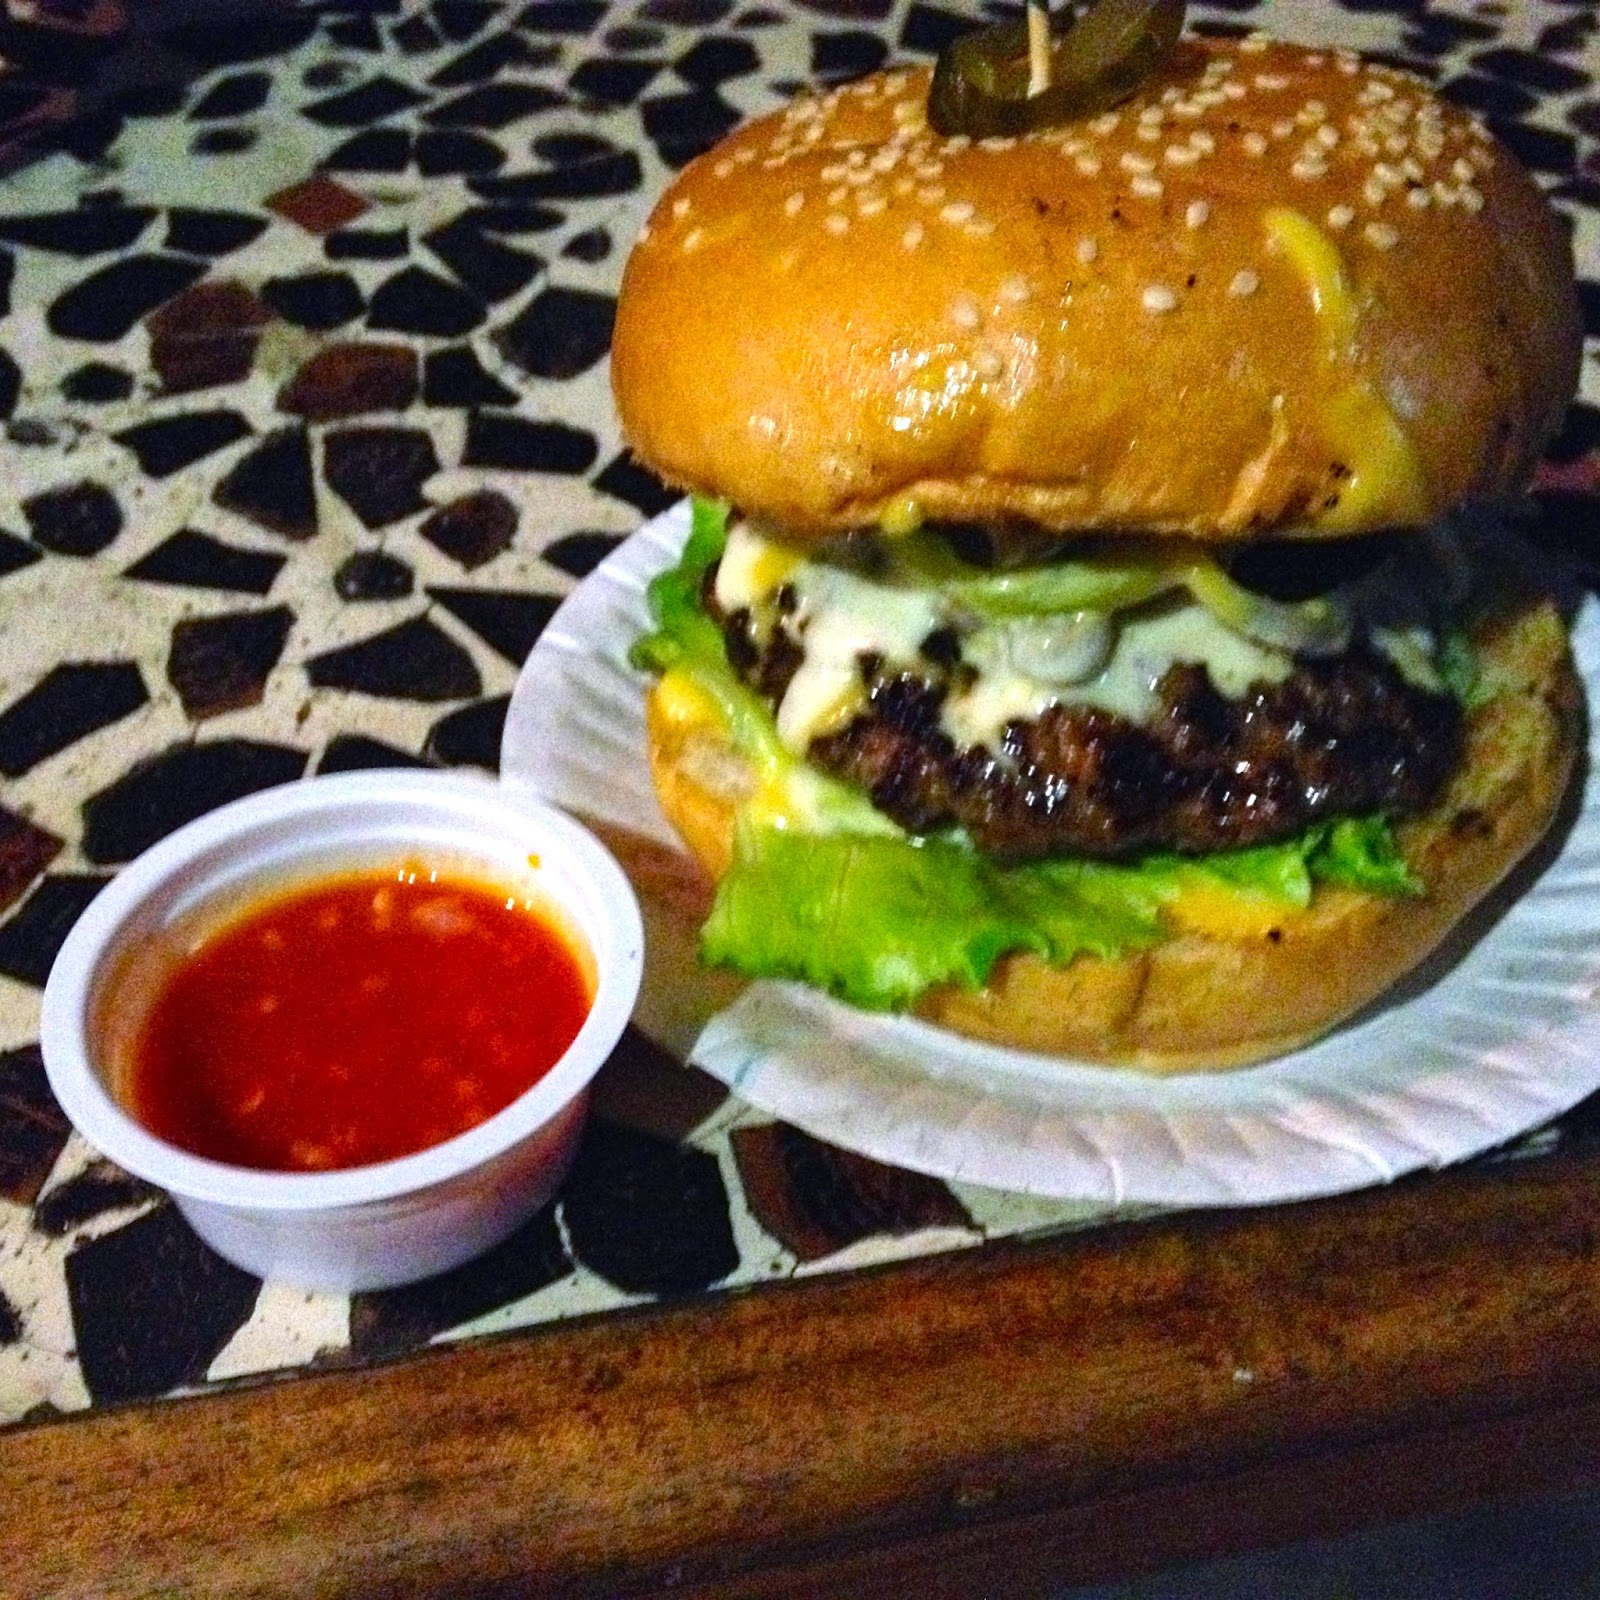 1/4 pound burger at Burgaholic Cebu with home-made hot sauce